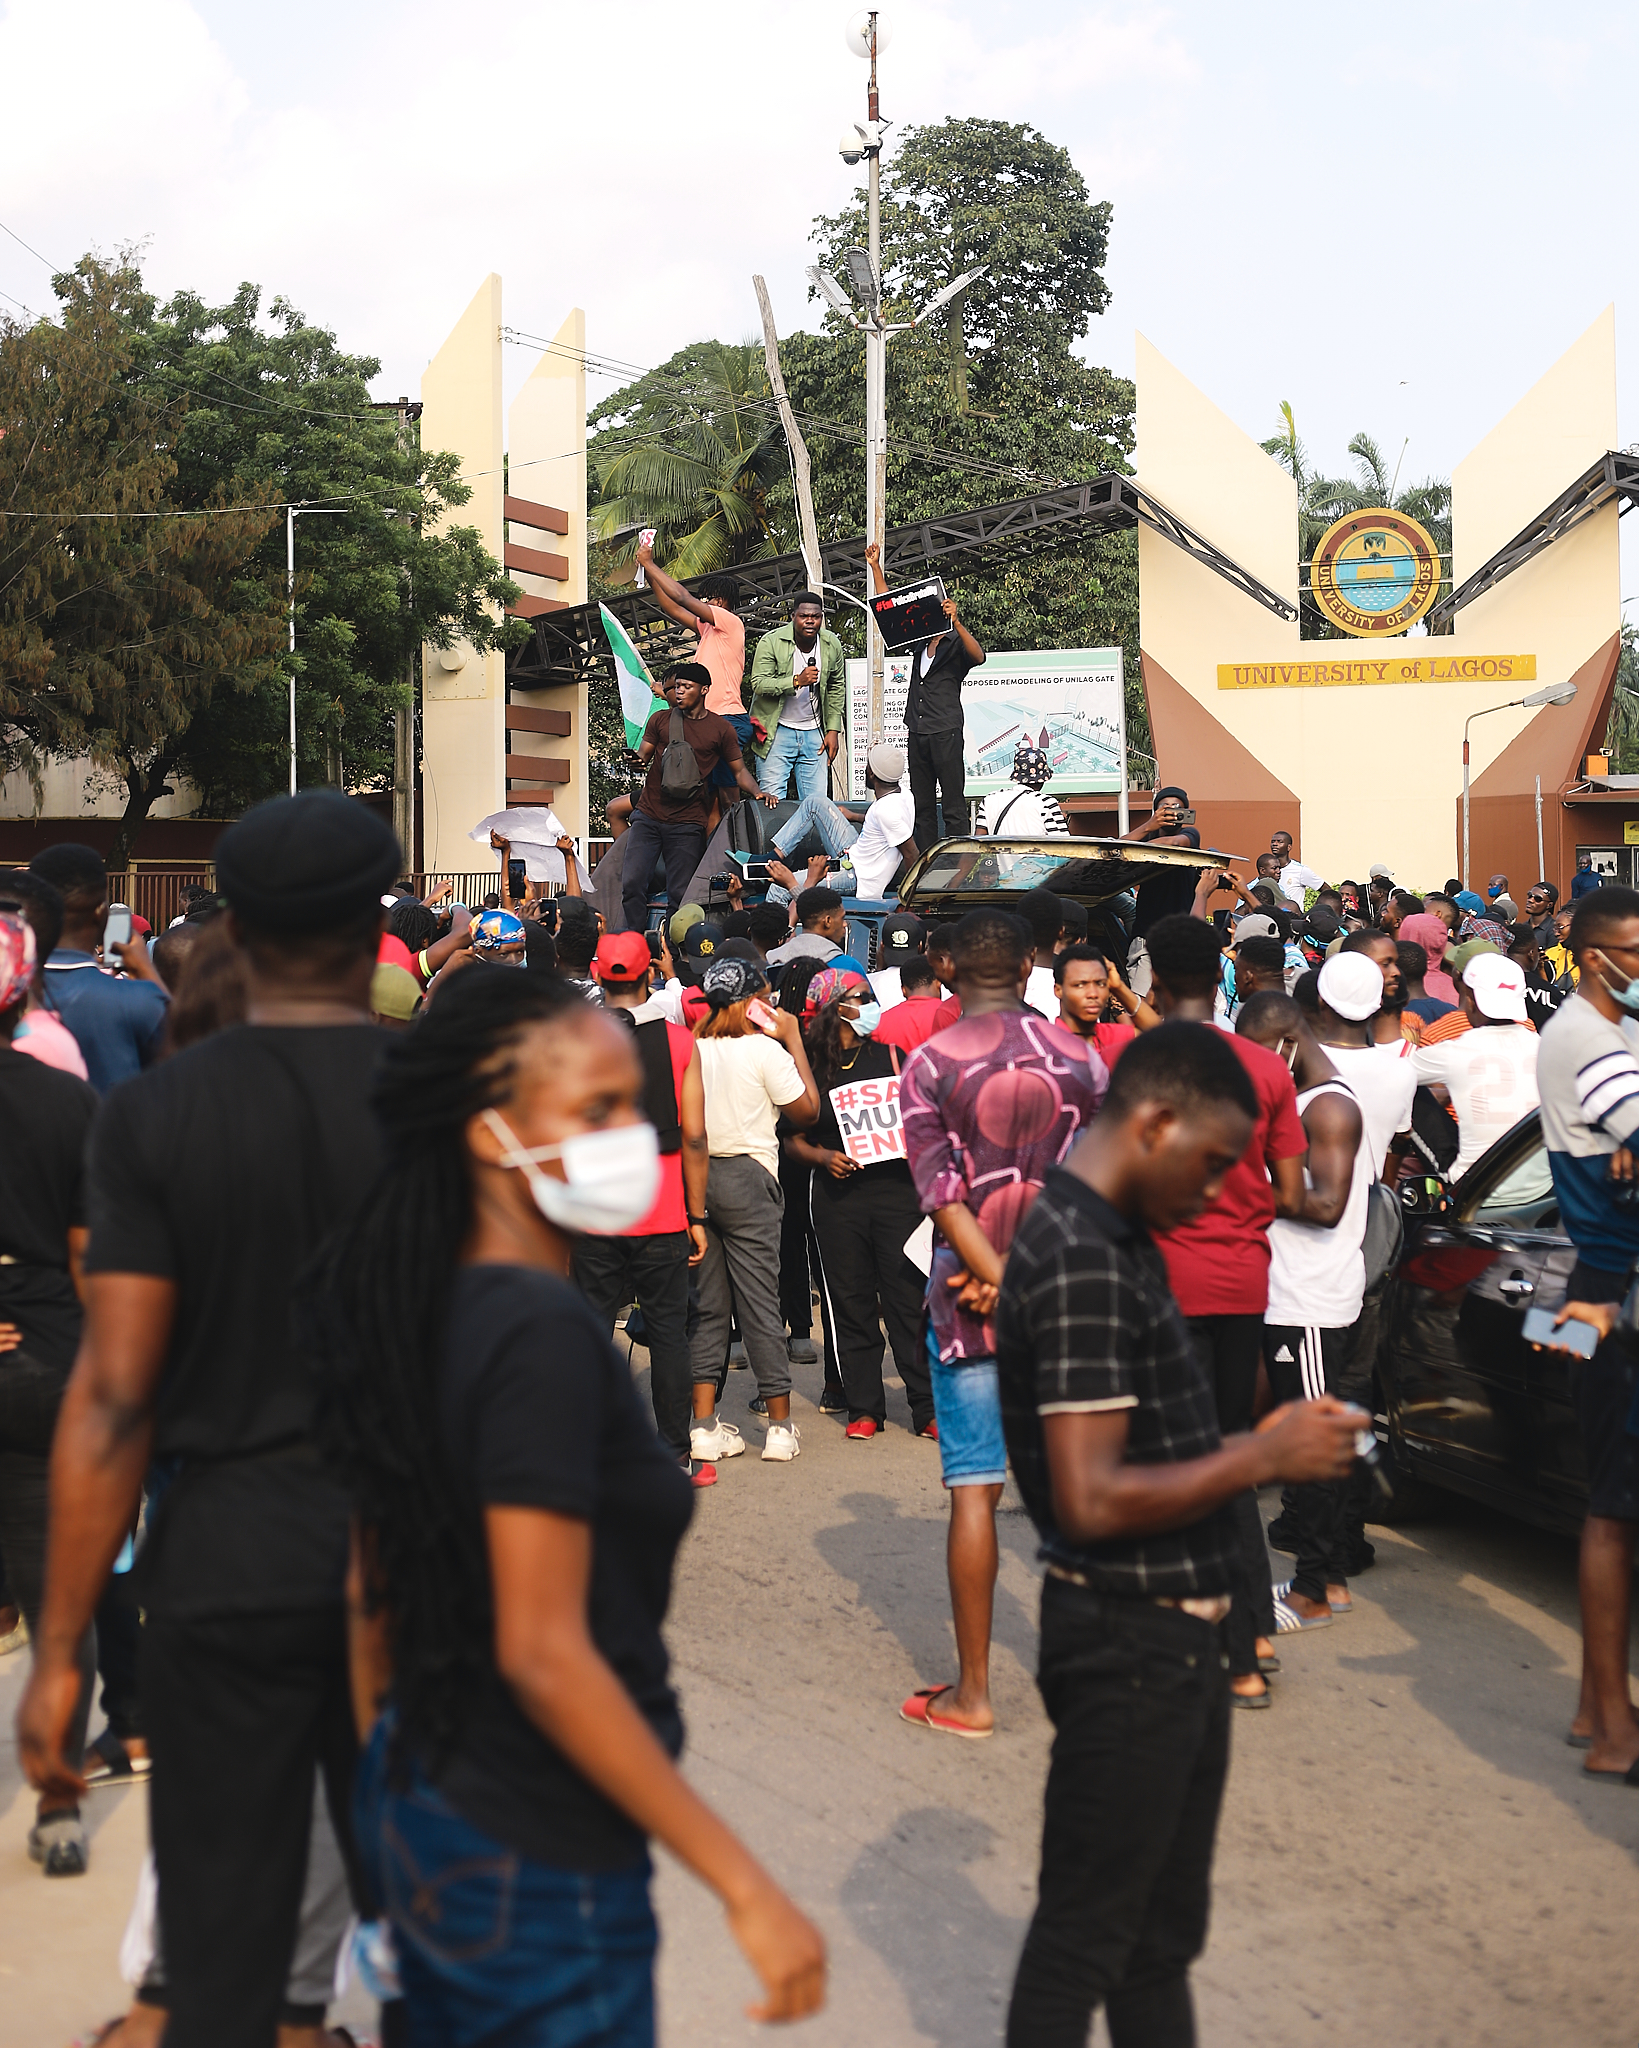 Crowd of protesters at anti-SARS protest in Lagos